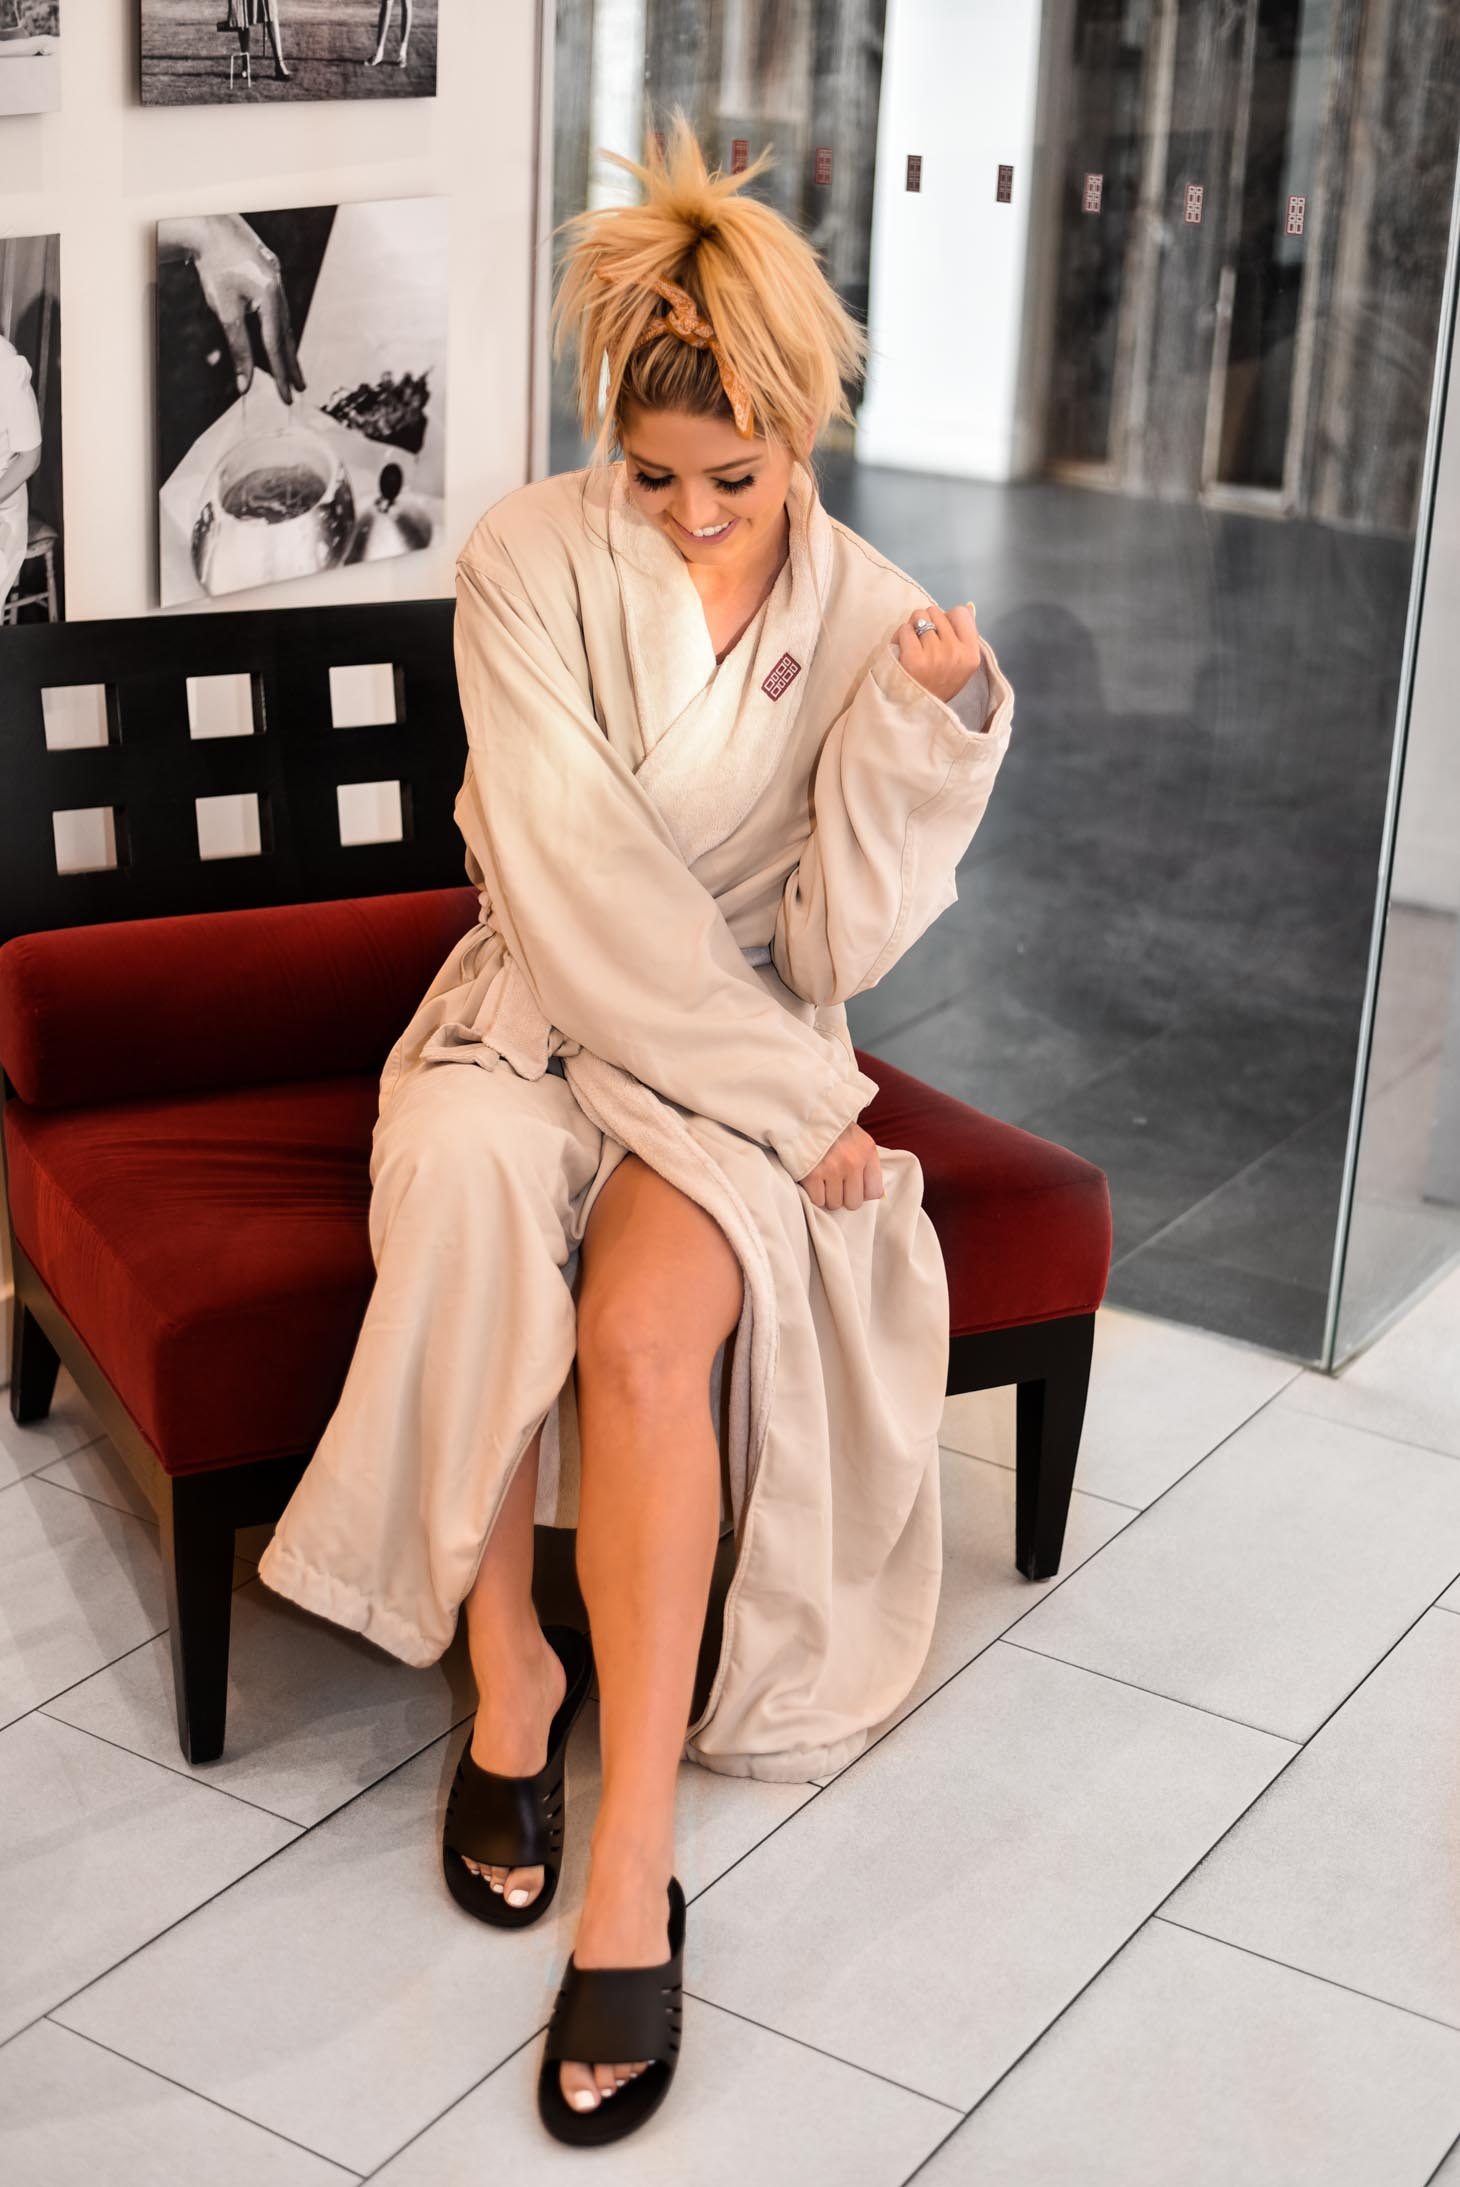 Erin Elizabeth of Wink and a Twirl shares her spa experience at Red Door Spa in Scottsdale, Arizona